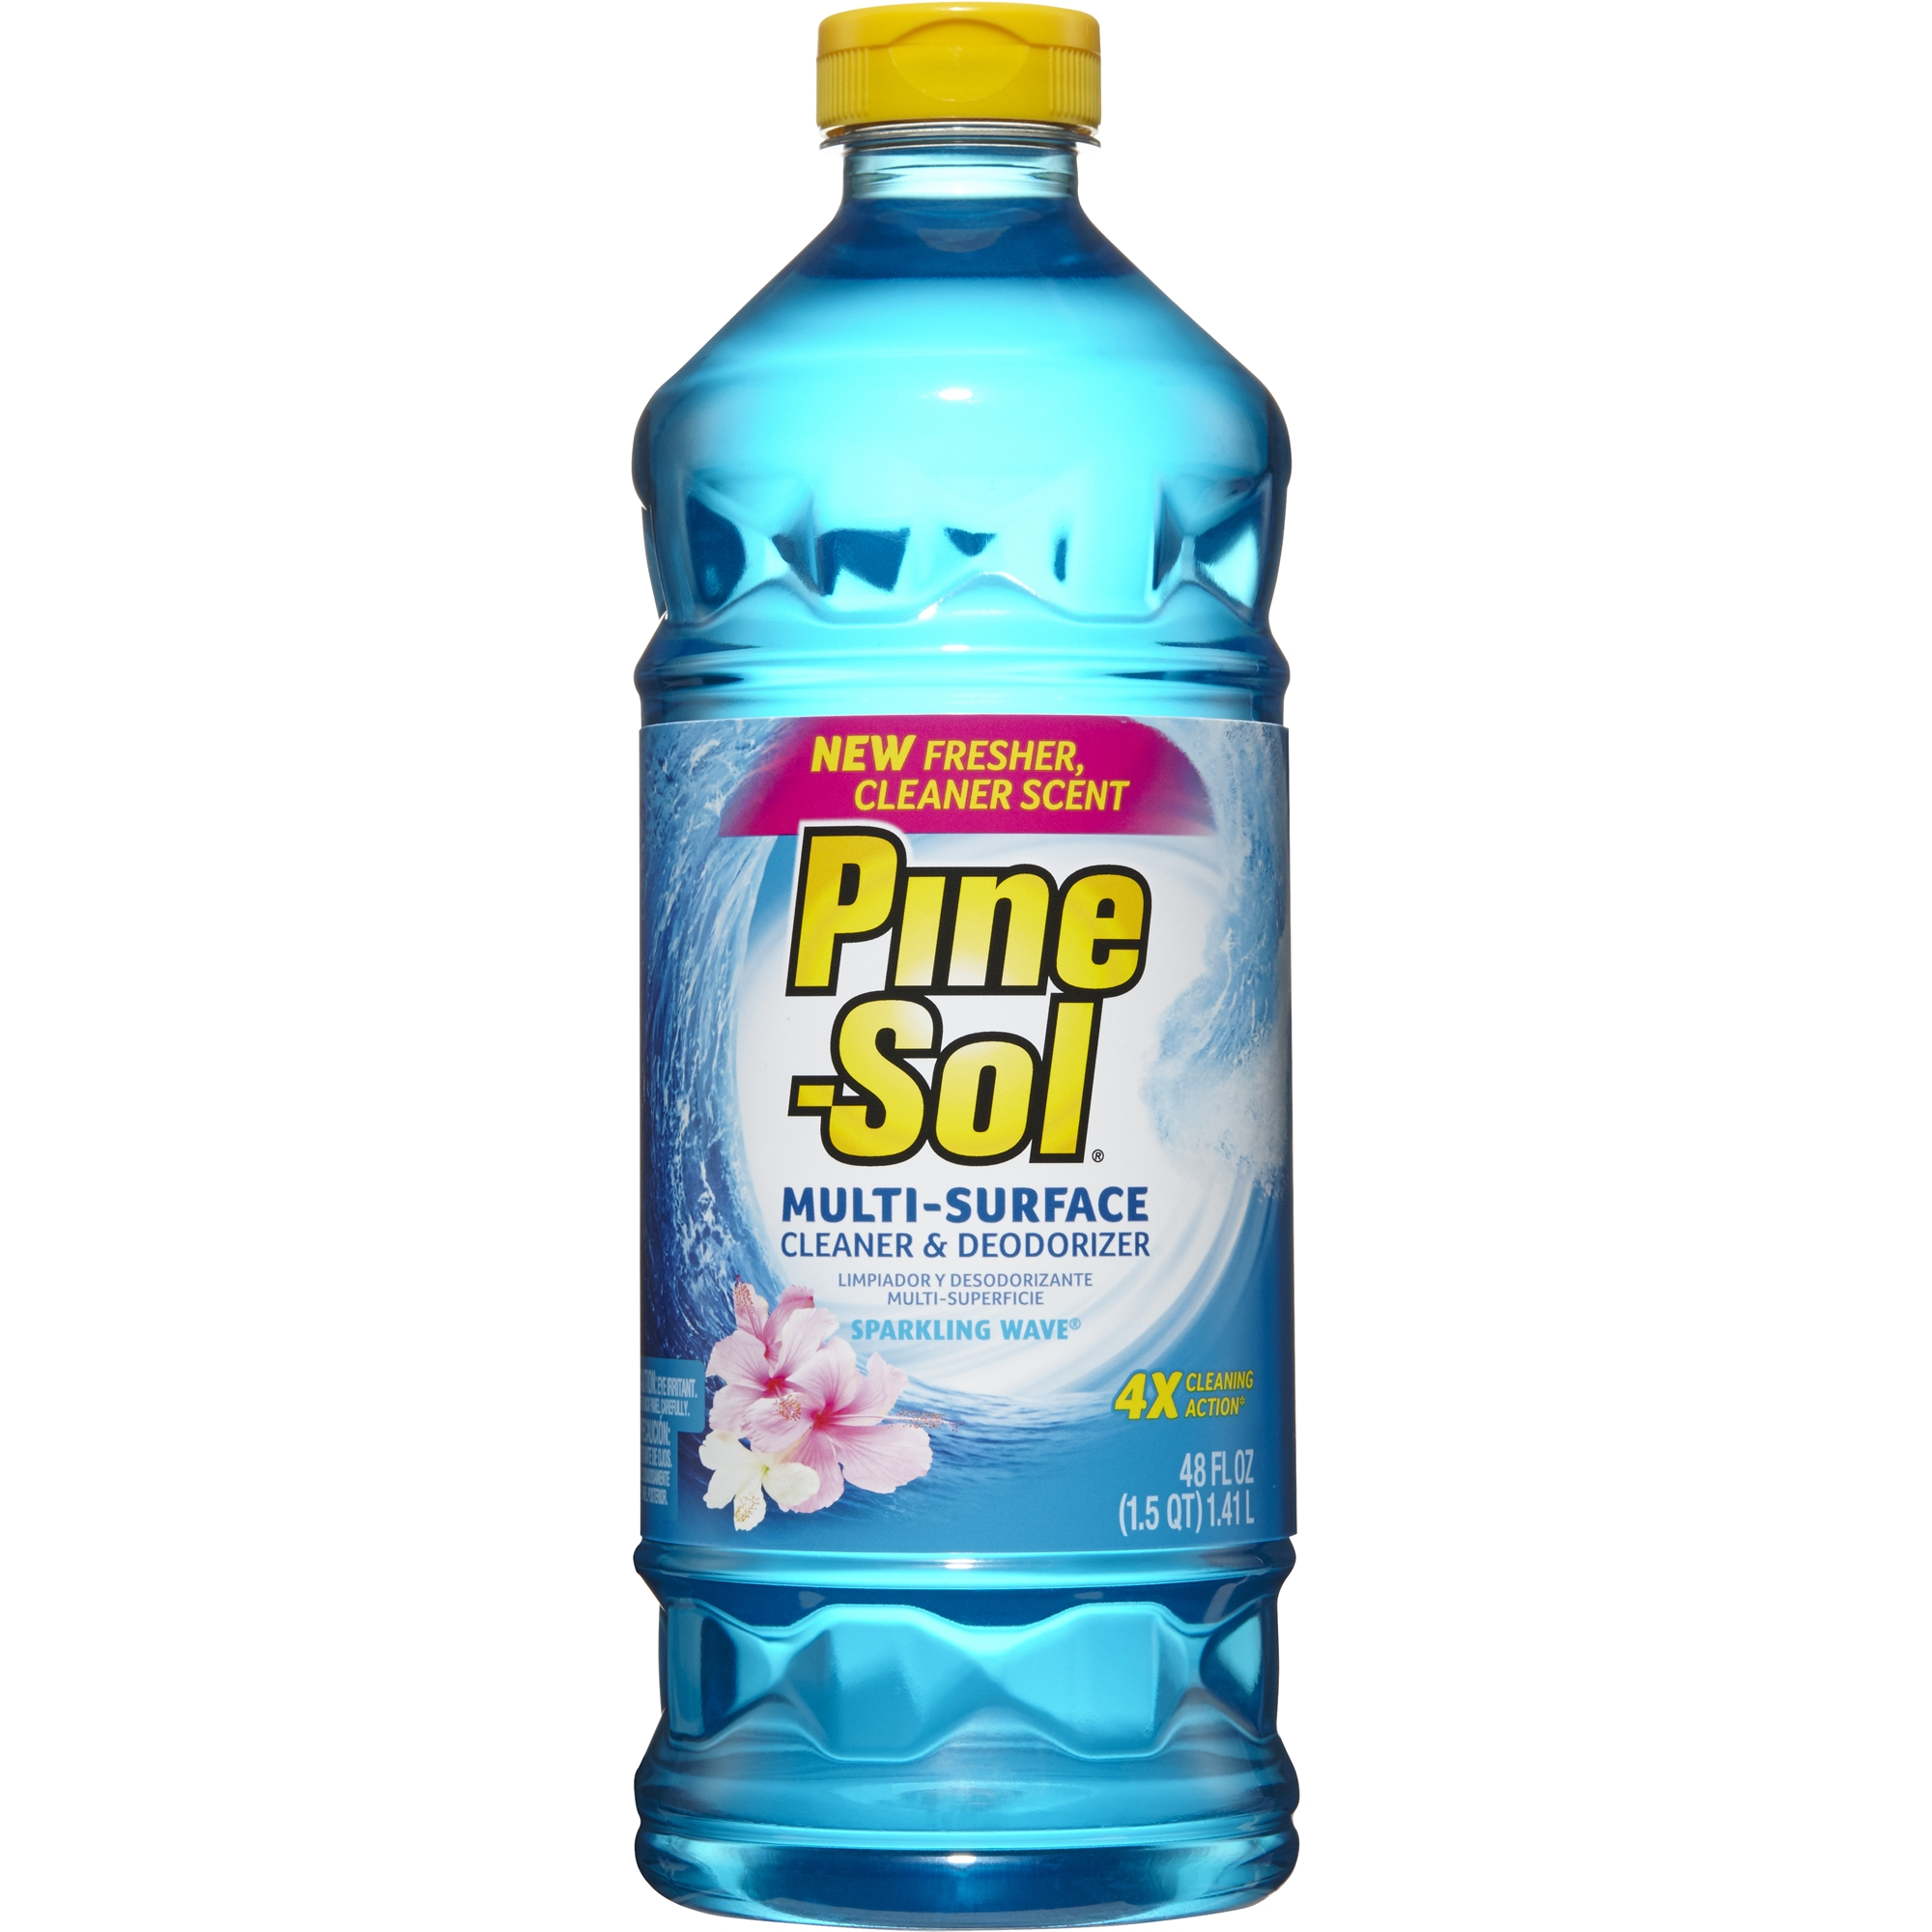 Pine-Sol All Purpose Cleaner, Sparkling Wave, 48 oz Bottle